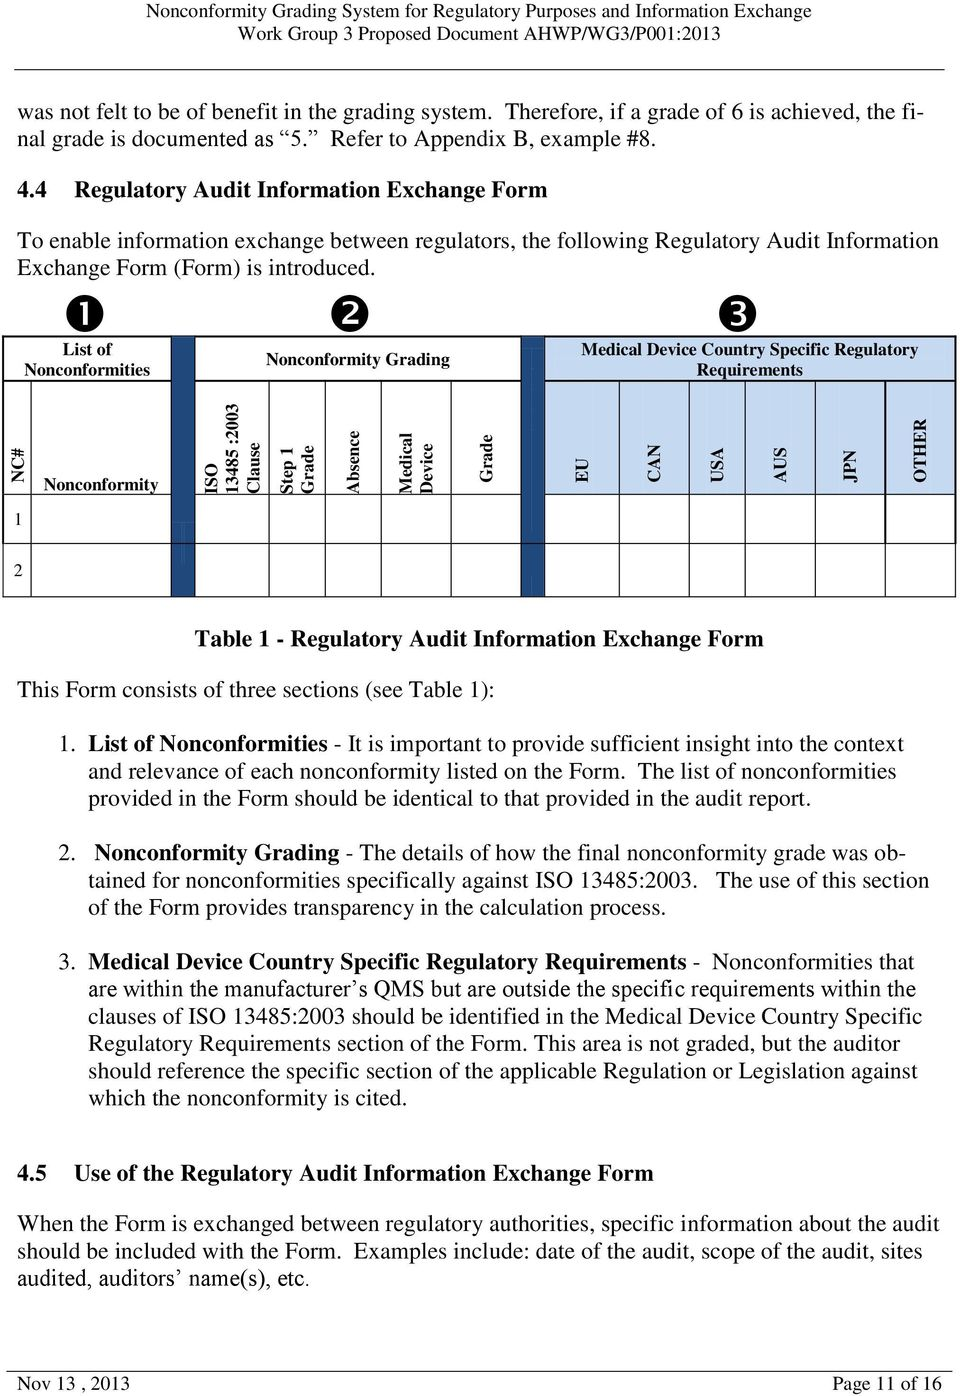 4 Regulatory Audit Information Exchange Form To enable information exchange between regulators, the following Regulatory Audit Information Exchange Form (Form) is introduced.